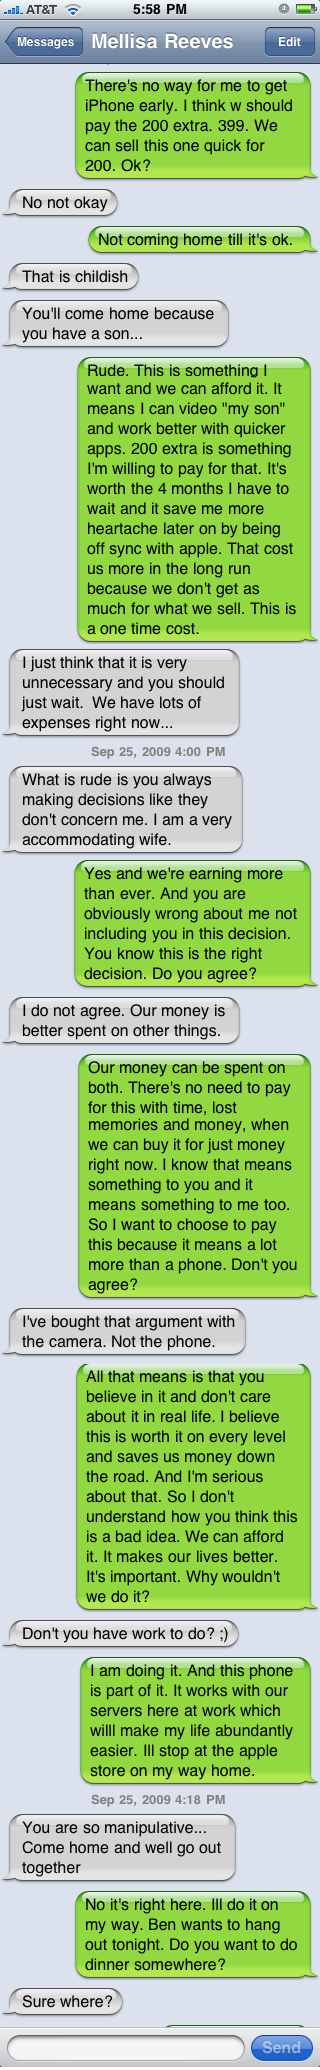 conversation with wife about iPhone